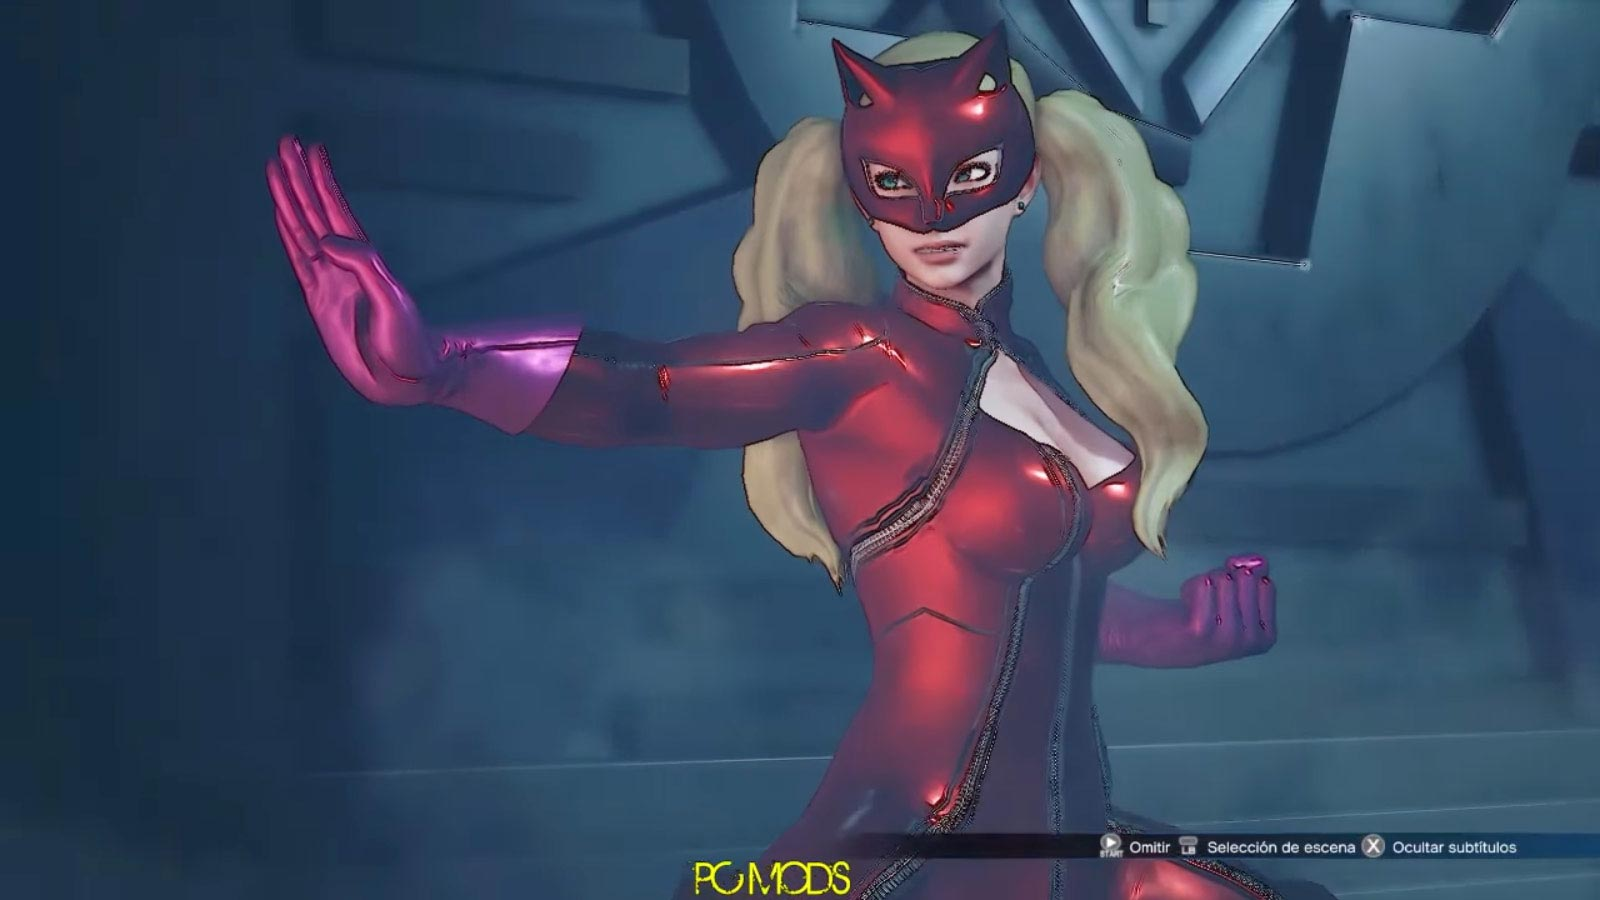 PC Best Mods: Alice, Emma Frost, and Ann Takamaki 7 out of 9 image gallery